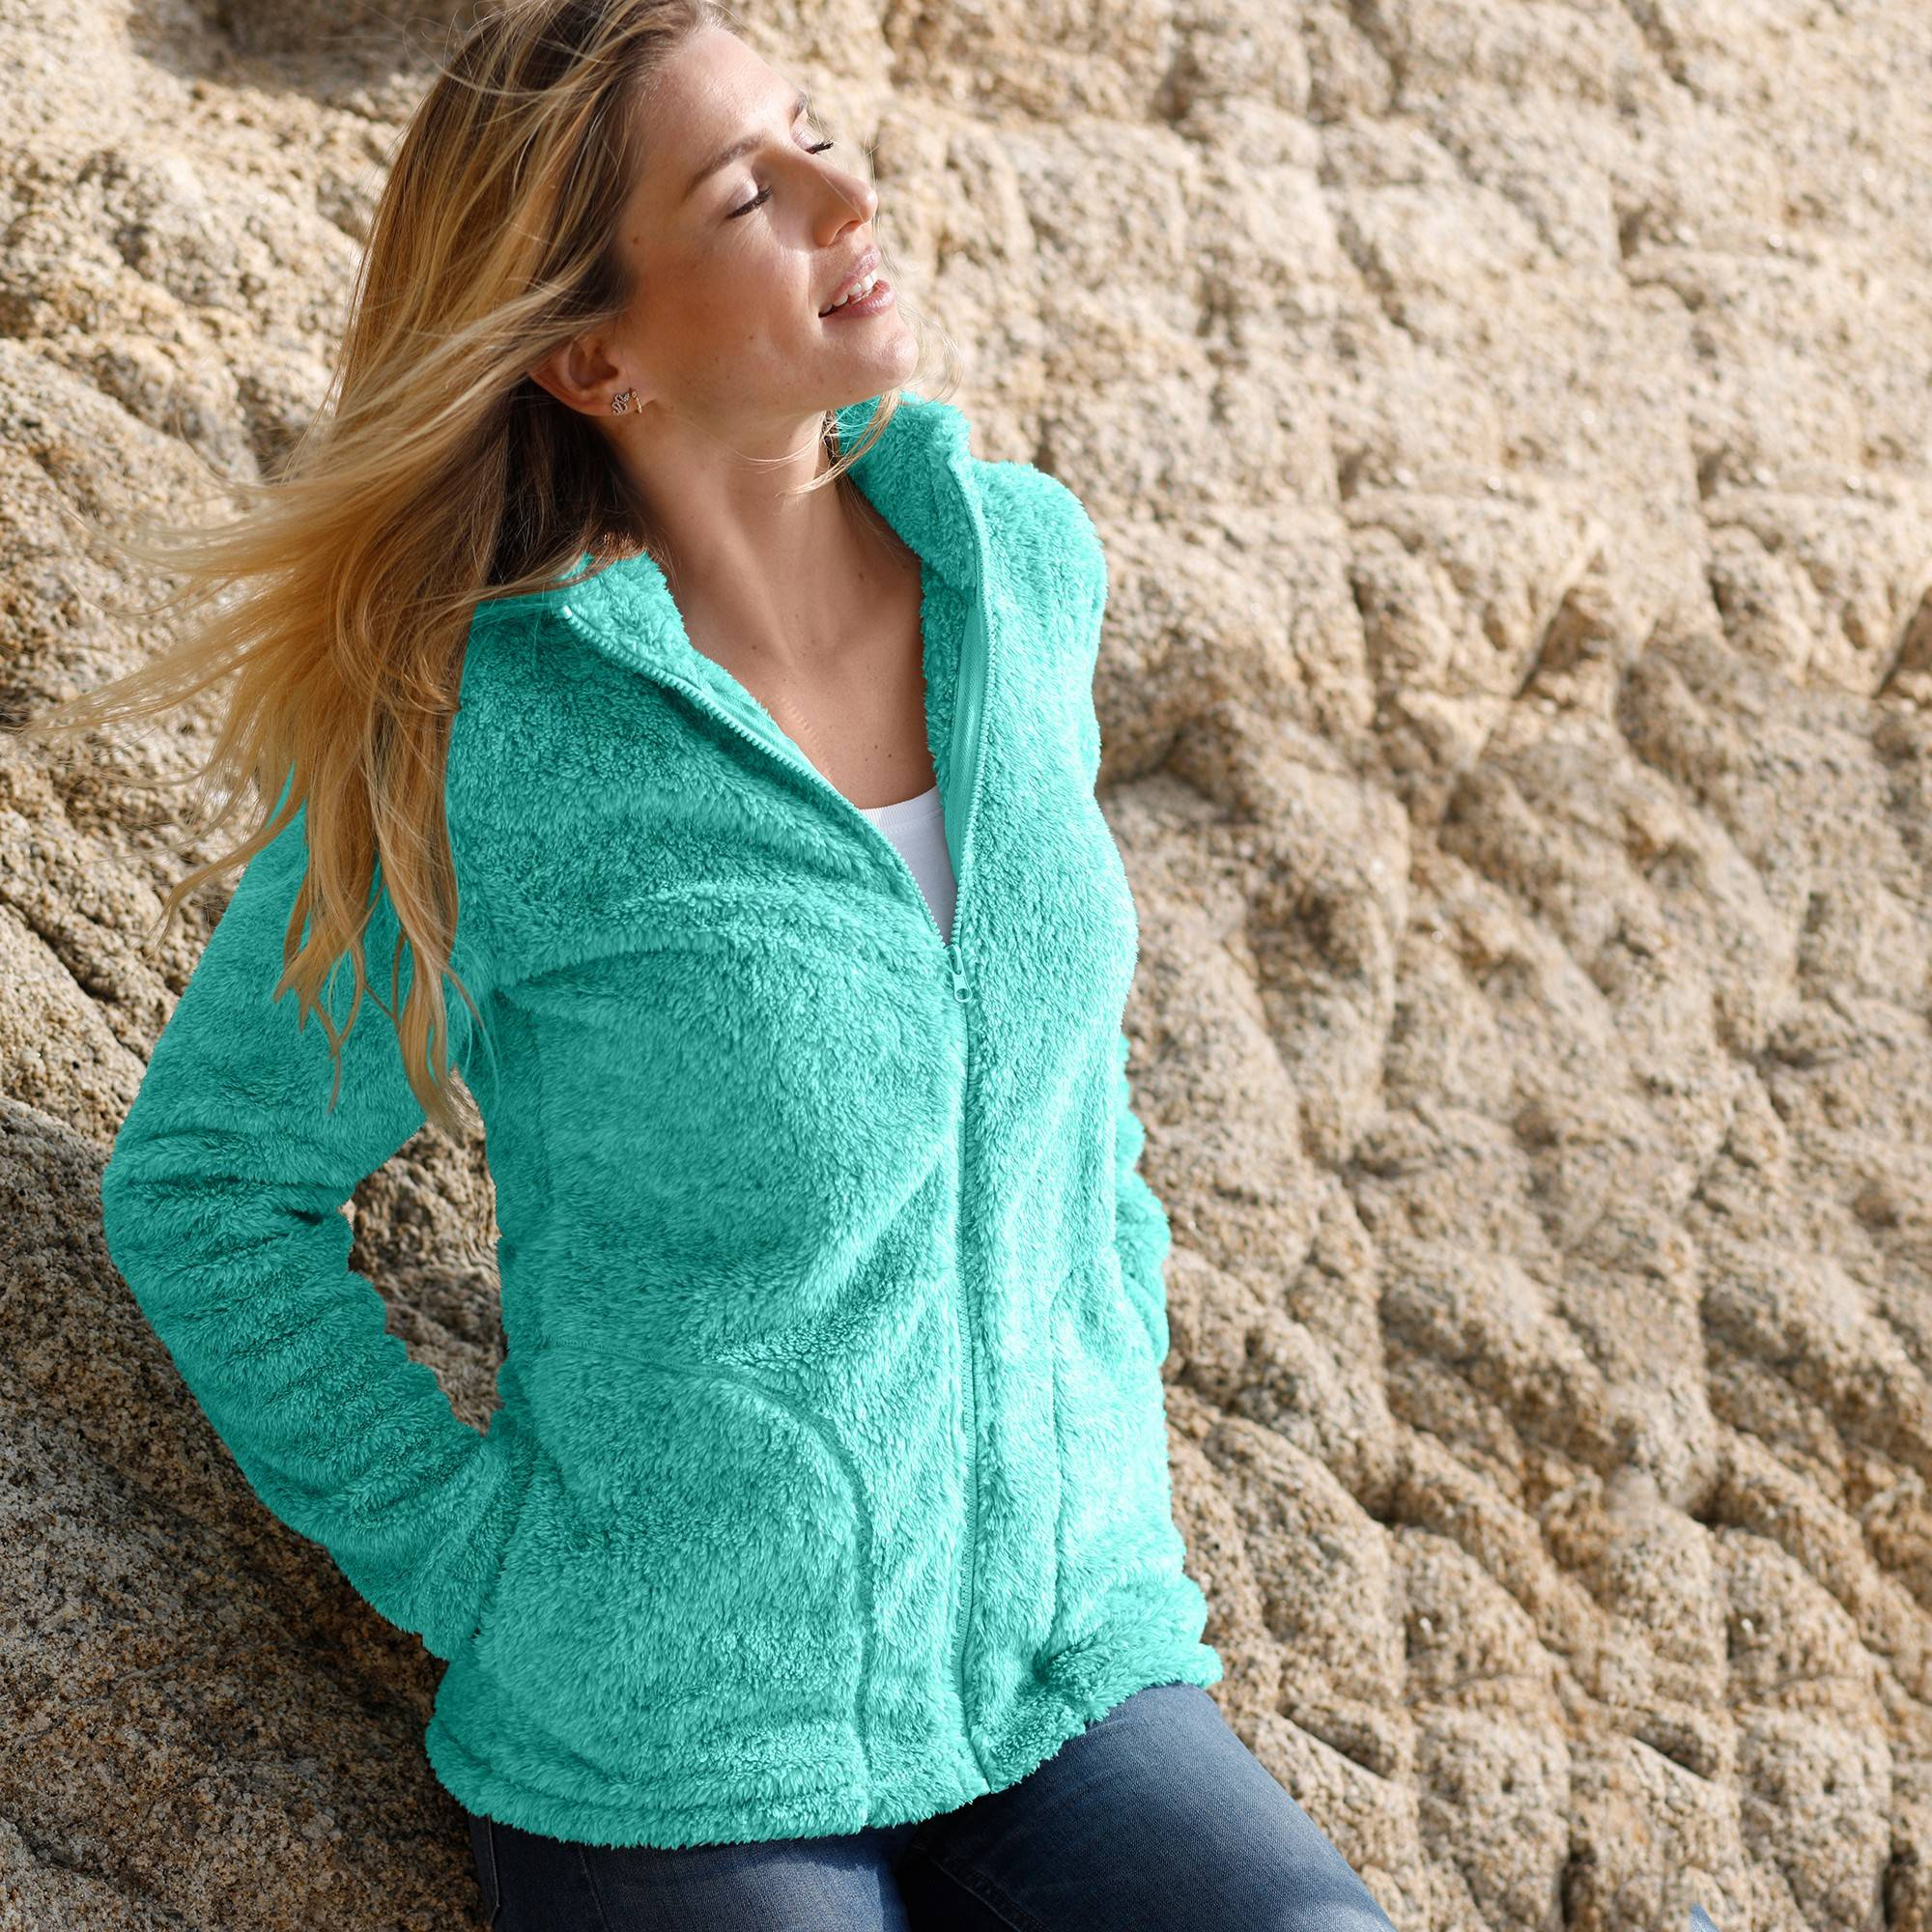 Casual Collection Veste maille peluche - Turquoise - Taille : 38,40 - Blancheporte